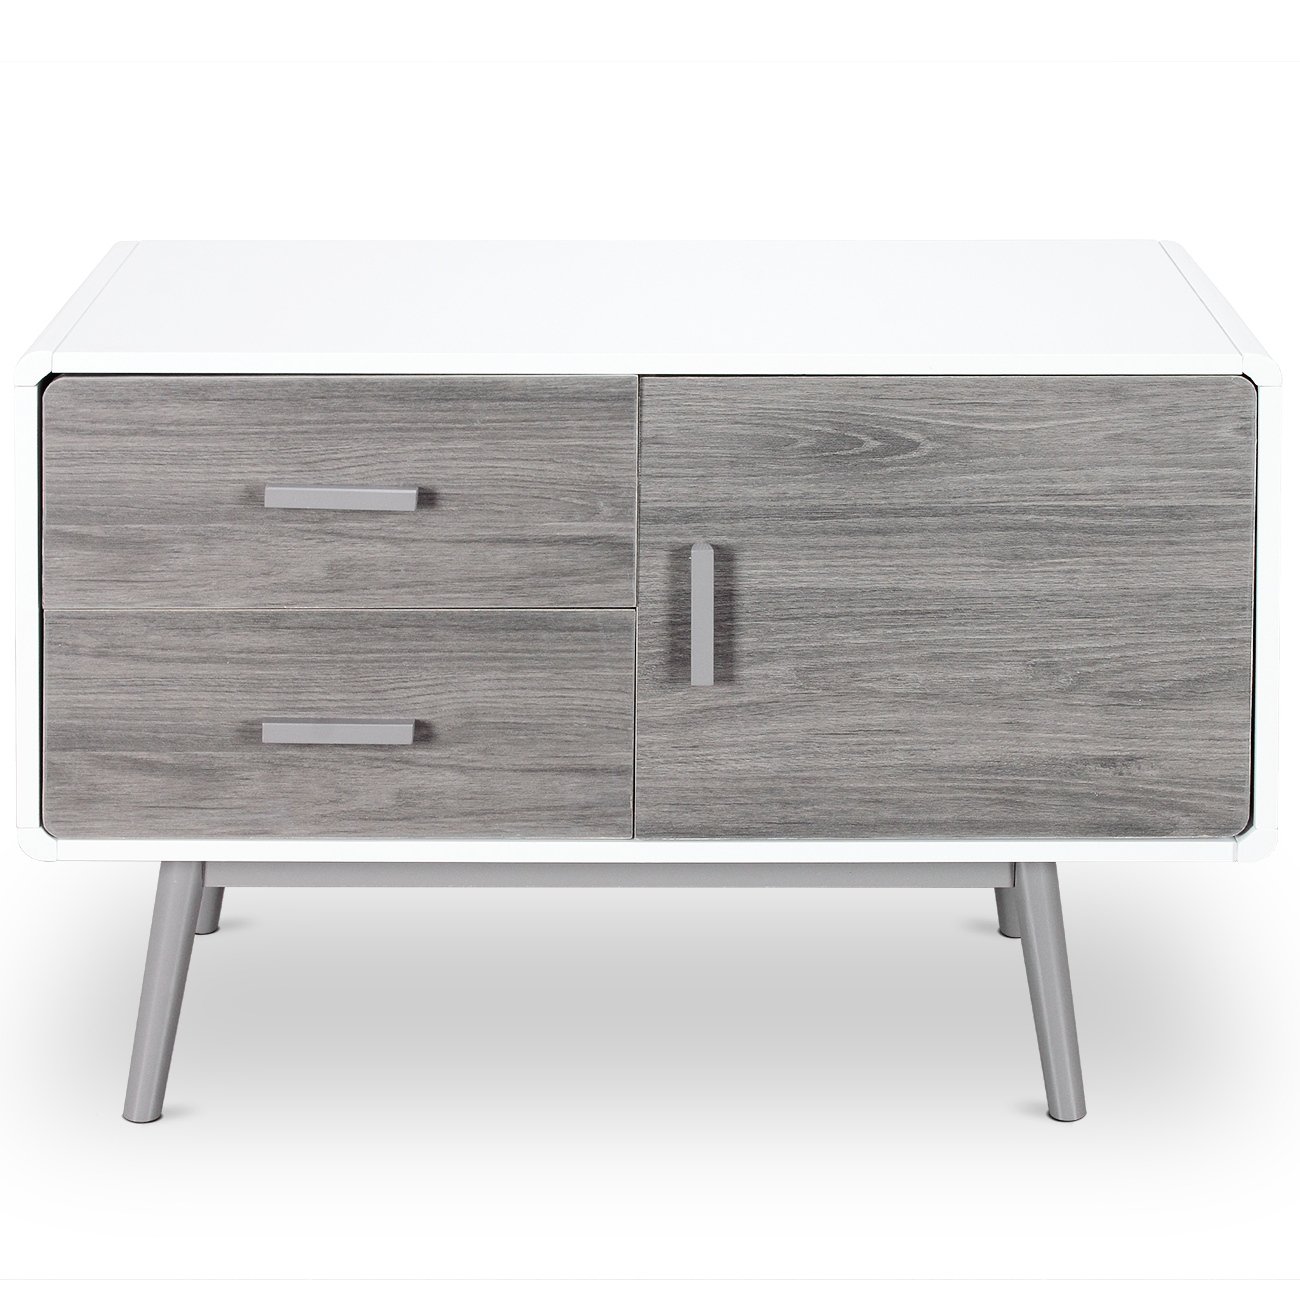 Details About Mid Century Modern Buffet Sideboard Stand With 2 Drawers 1  Cabinet In White Regarding Mid Century Modern Glossy White Buffets (View 4 of 20)